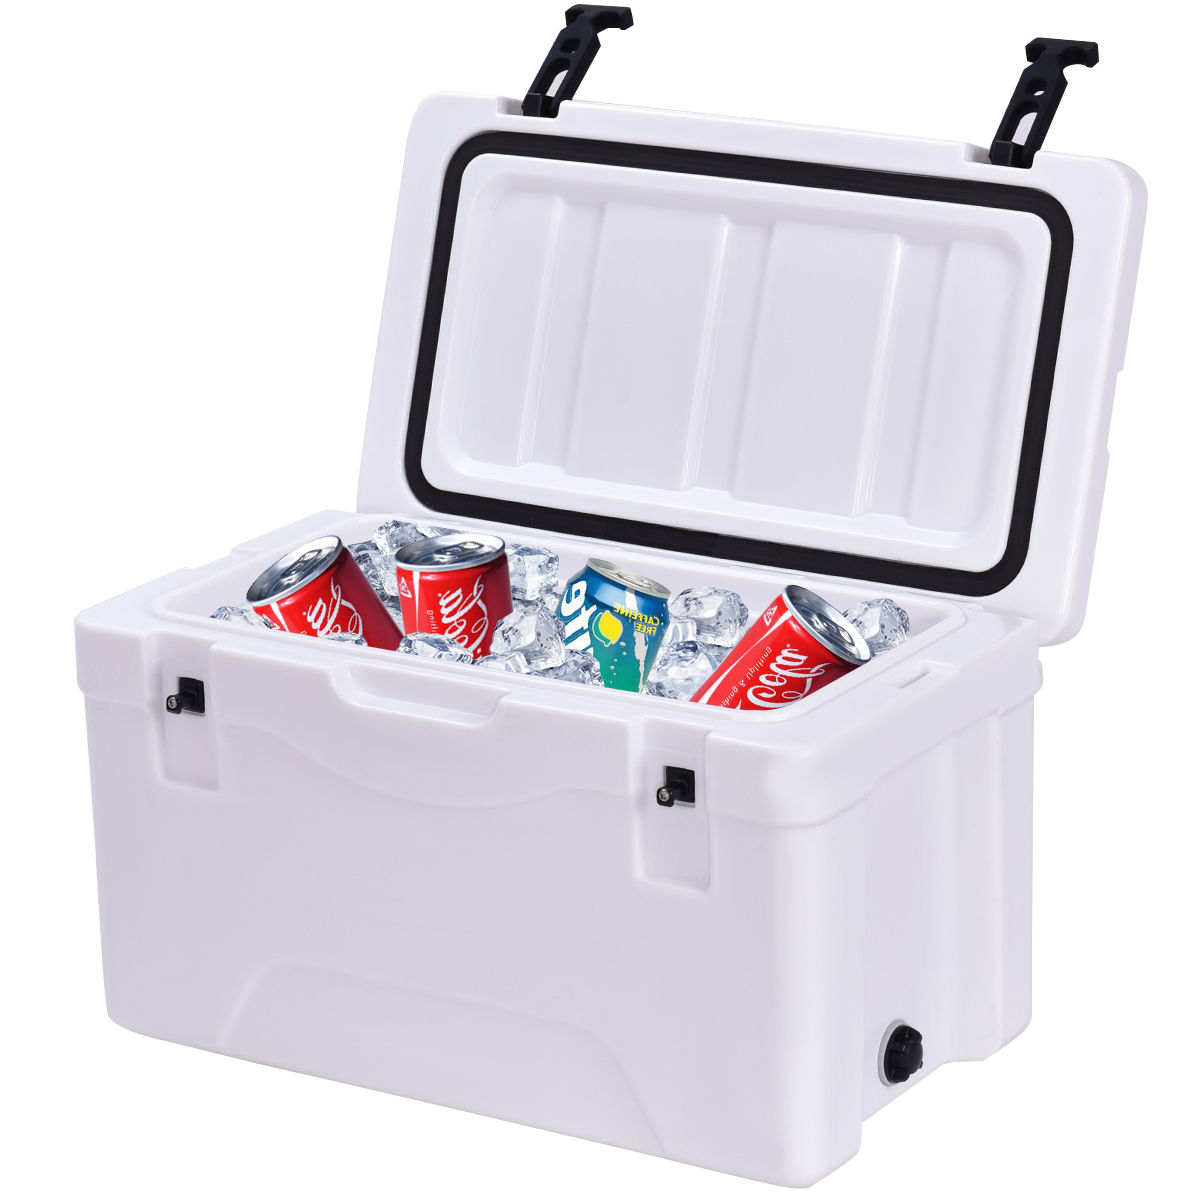 Costway Outdoor Insulated Fishing Hunting Cooler Ice Chest 30 Quart Sports Heavy Duty by Costway